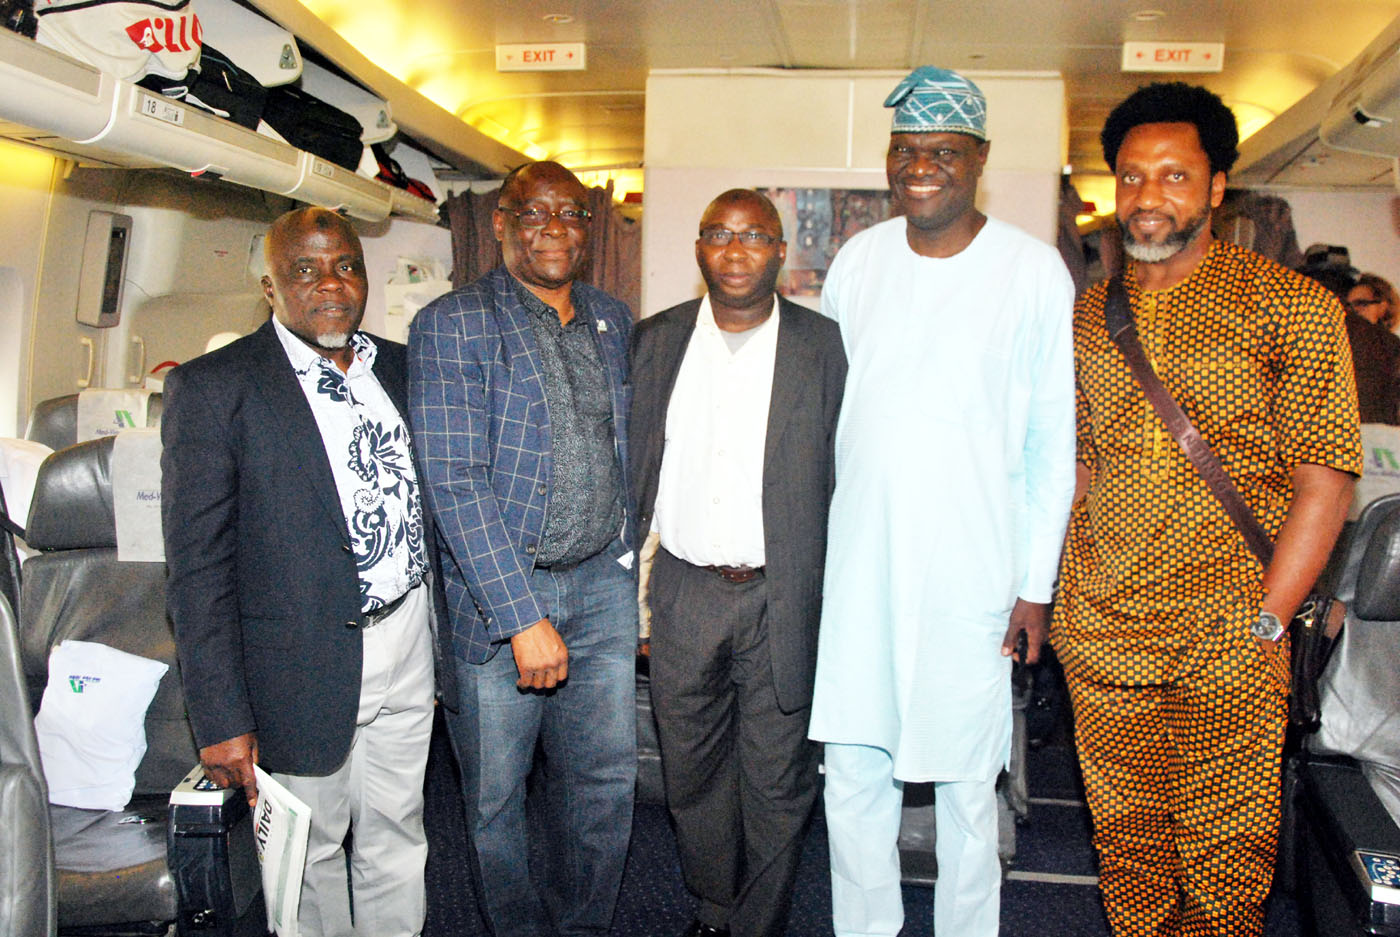 From left Alhaji Bode Oyedele, Non-Executive Director, Med-View-Airline PLC; Mr Benedict Adeyinka, former Director, Airworthiness Standard, Nigerian Civil Aviation Authority NCAA; Alhaji Isqil Bello, Med-View Passenger; Engineer Lookman Animashaun, Chief Operating Officer, Med-View Airline and Mr Ricardo Agbor, Popular Nollywood Actor in a Lagos - Gatwick London Med-View Boeing 747 bound Aircraft at Murtala Muhammed International Airport, Ikeja, Lagos on Sunday